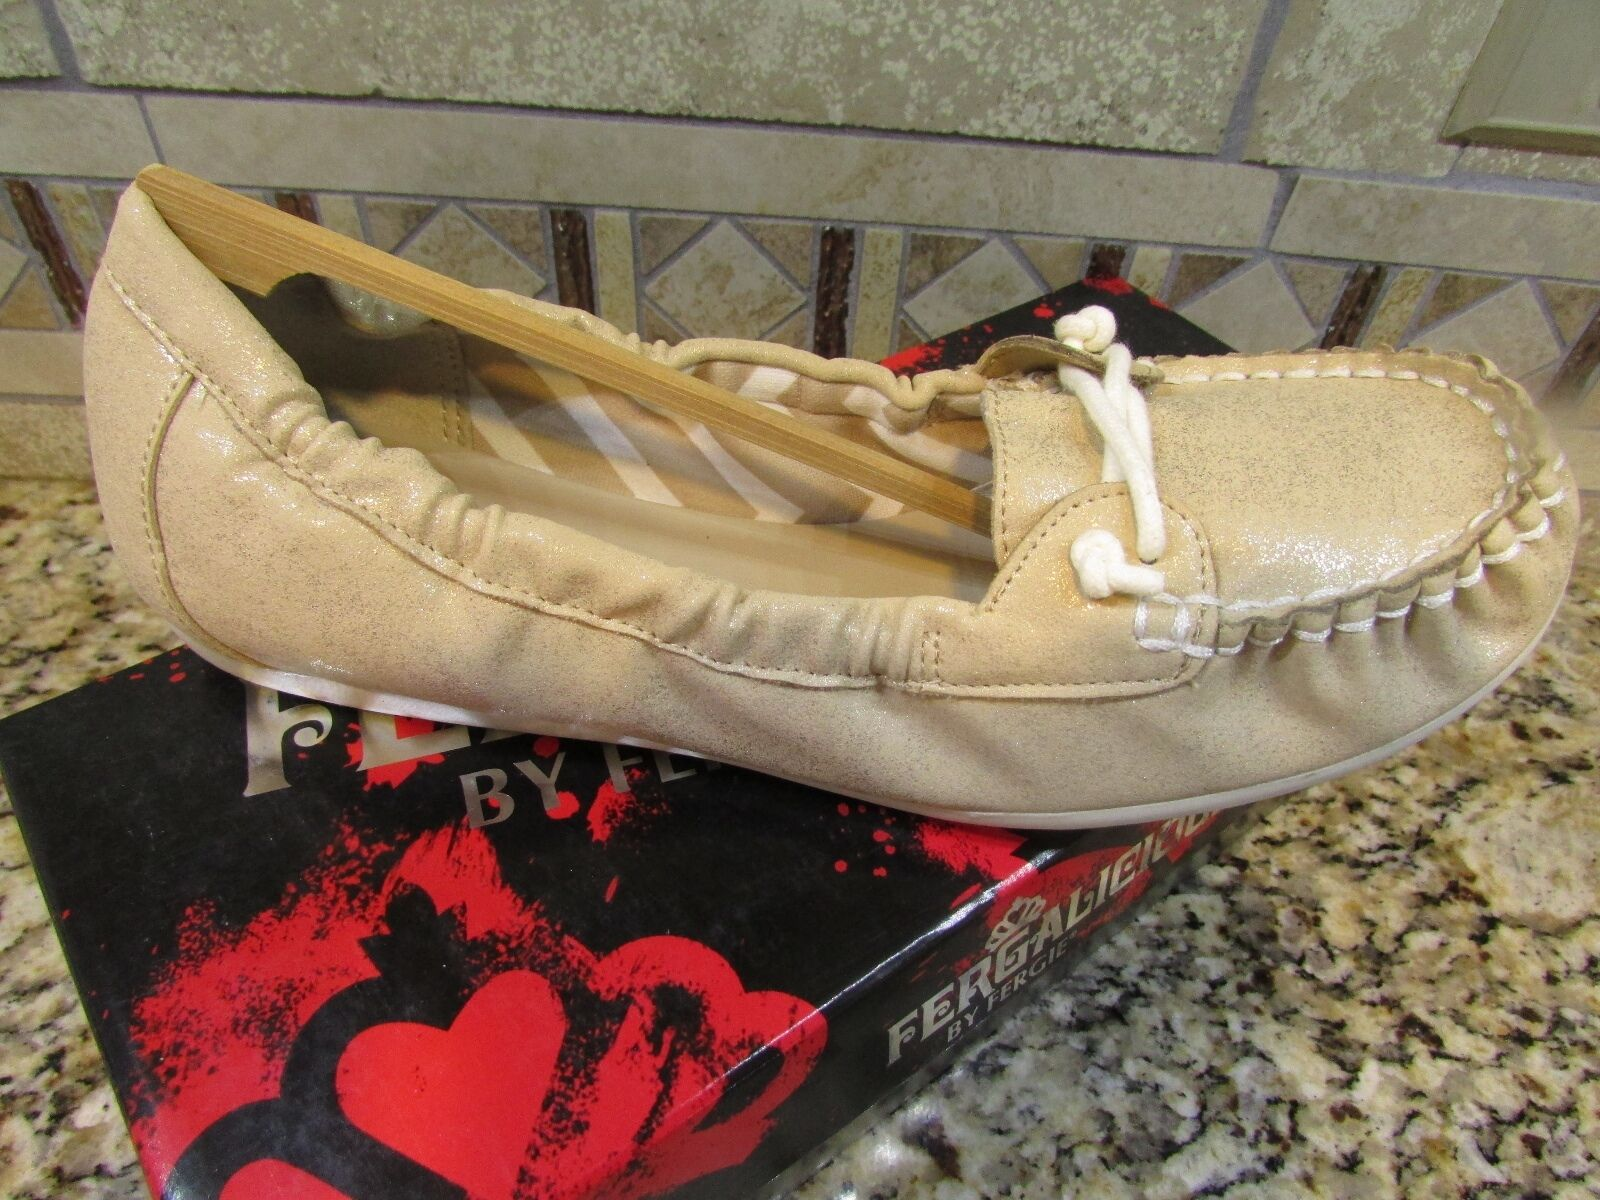 NEW FERGALICIOUS WEEKENDZ MOCCASIN SHOES WOMENS 8.5 gold BOAT SHOES FREE SHIP